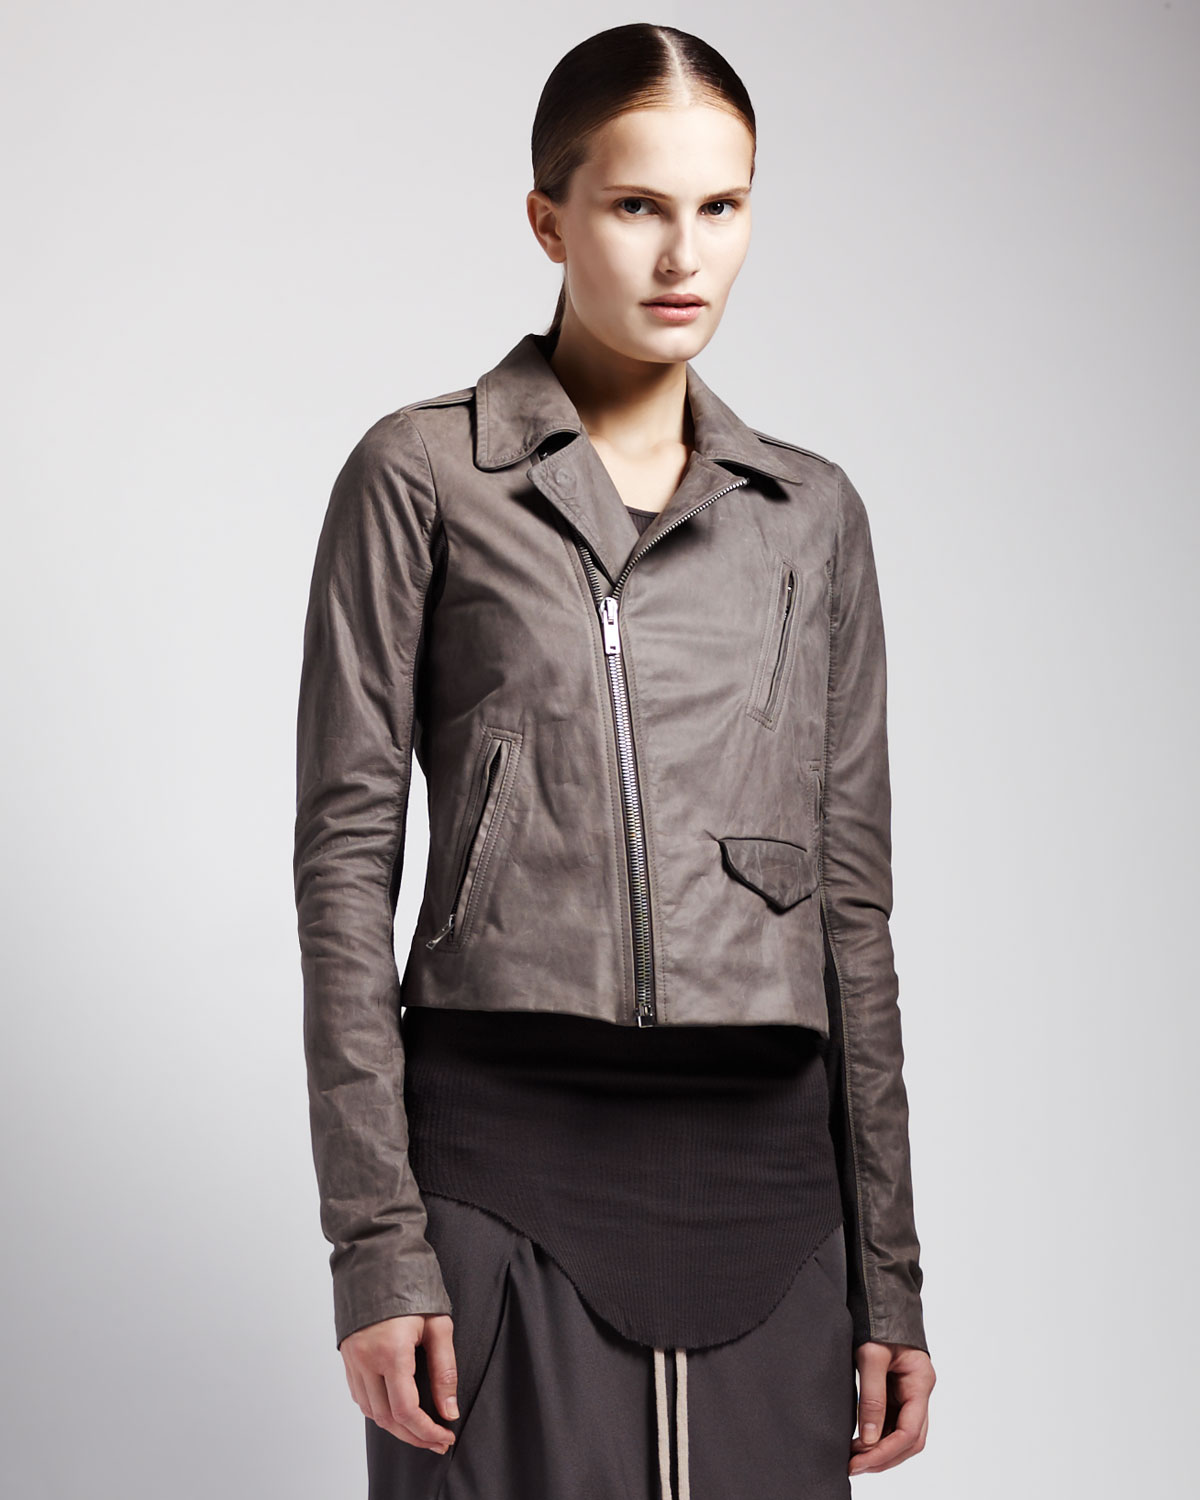 Rick Owens Womens Leather Biker Jacket in Gray (KOOL AID) | Lyst